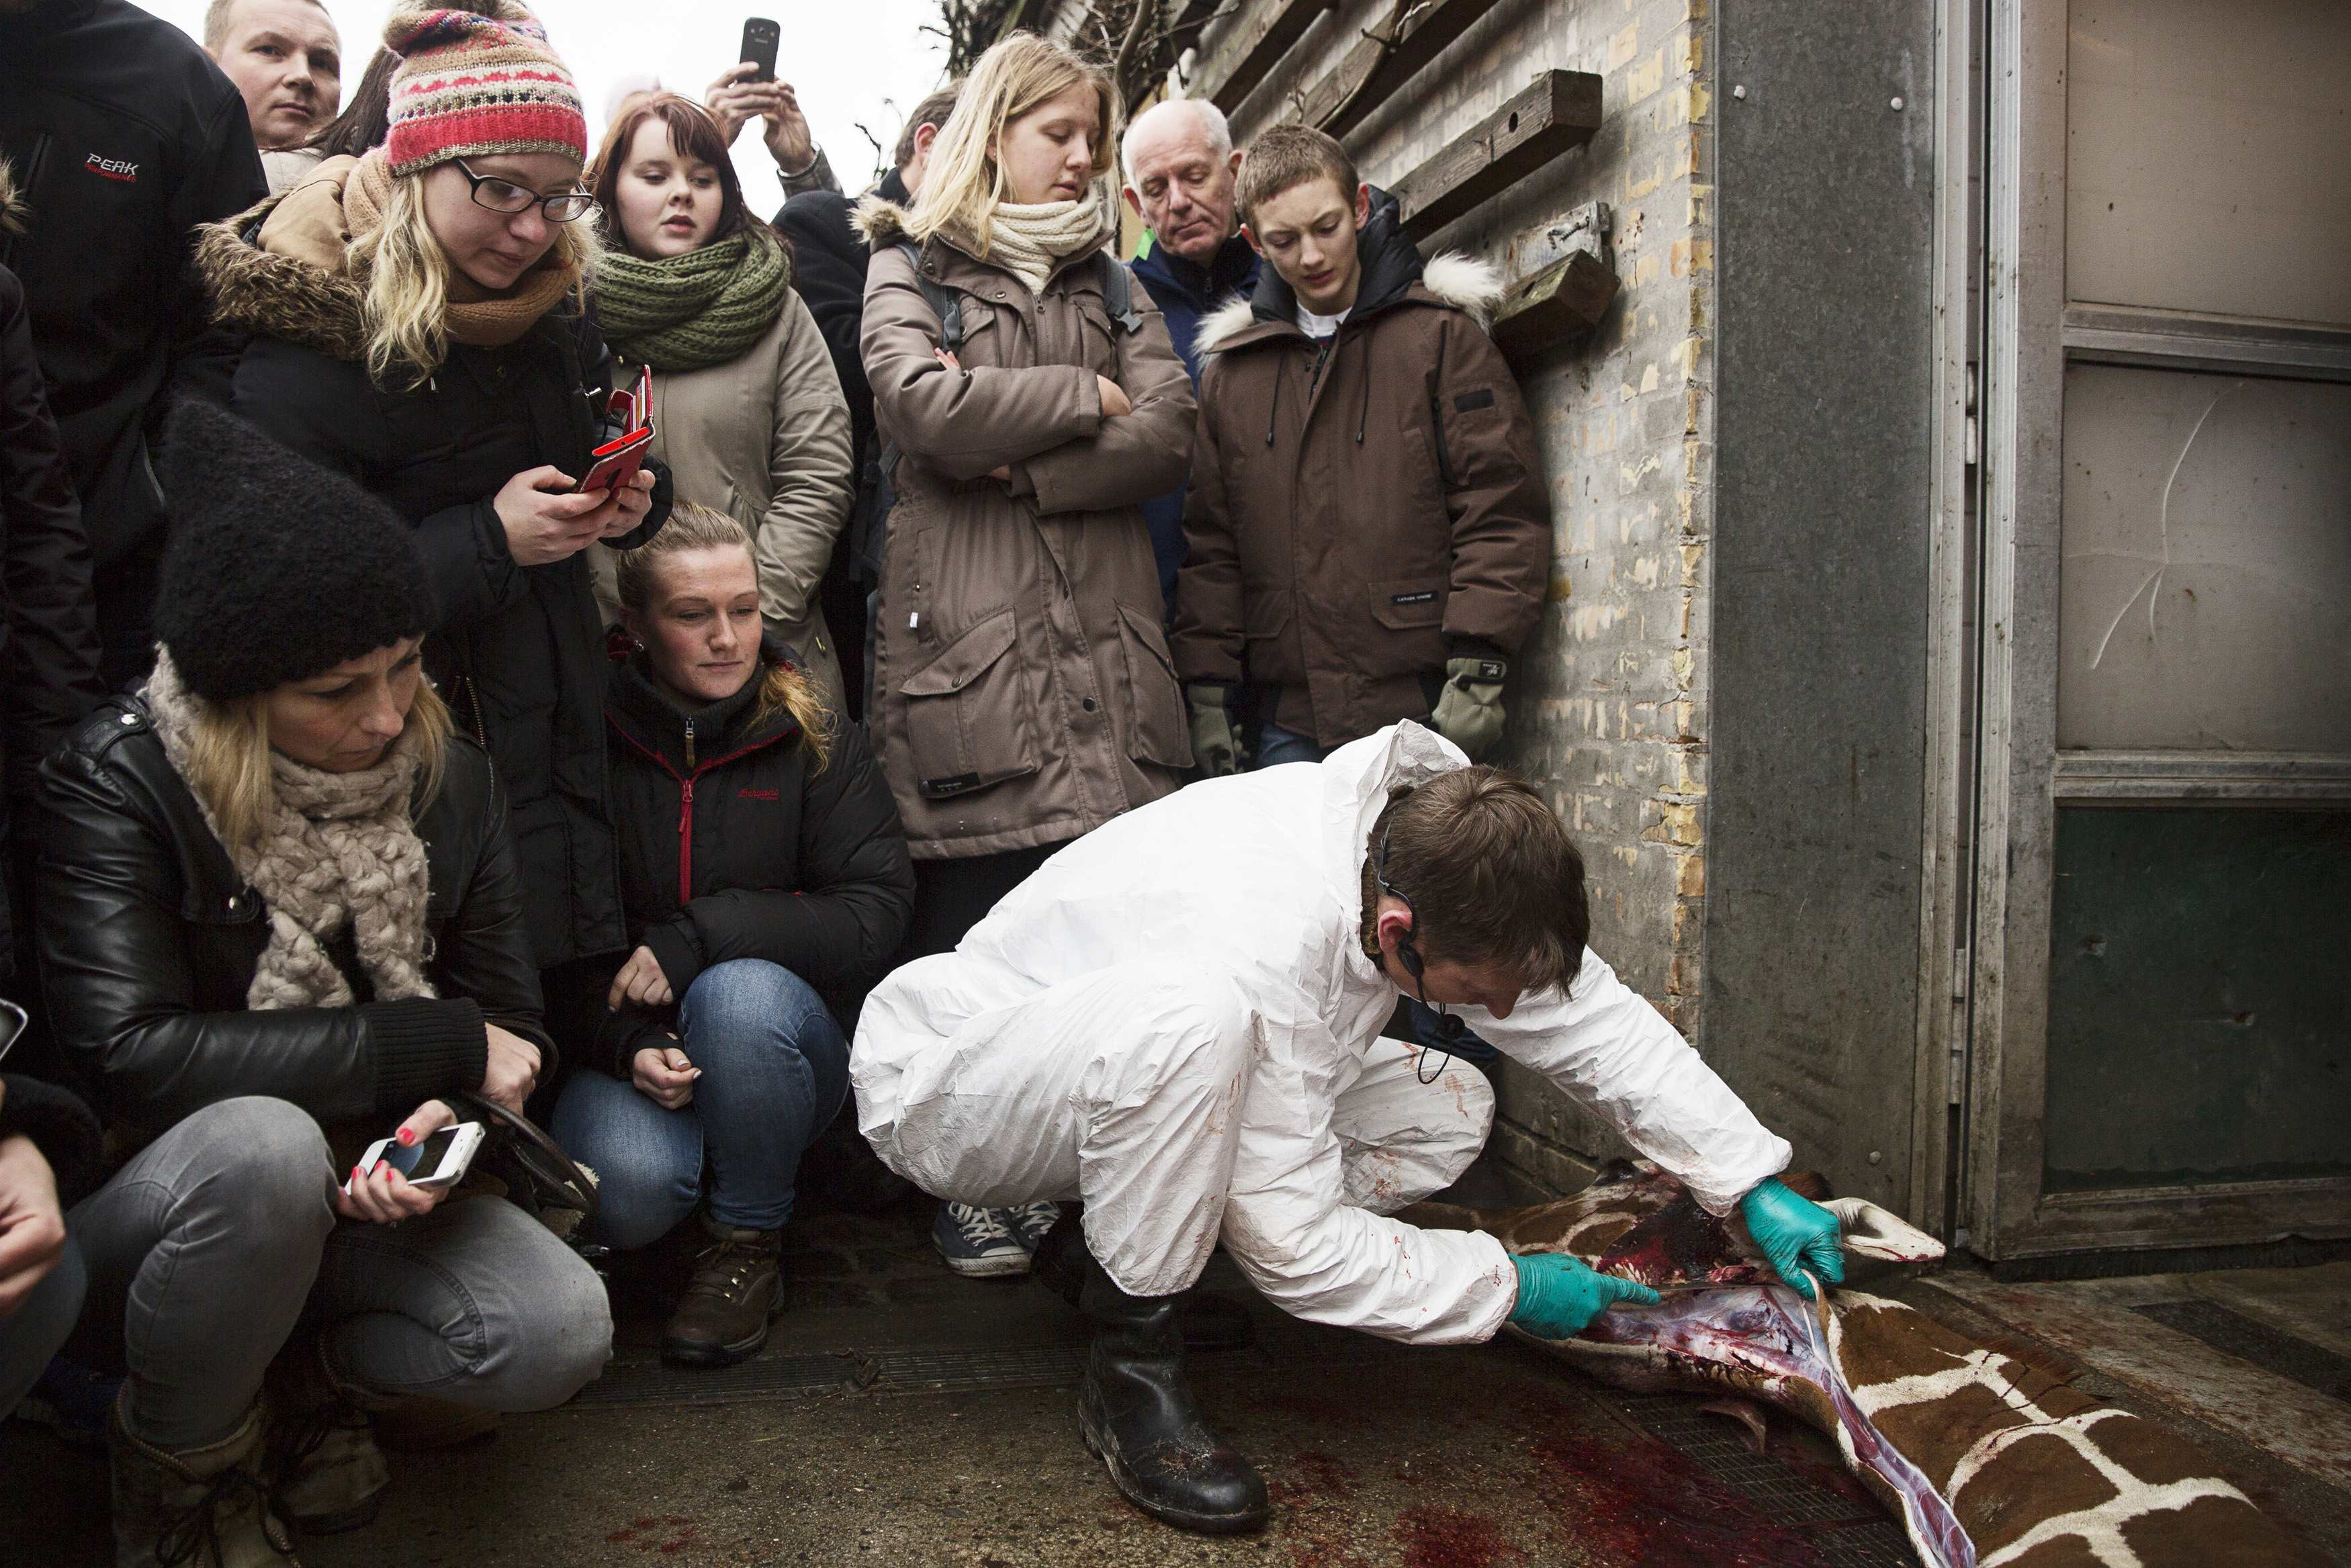 People look on as a veterinarian cuts apart the giraffe Marius after it was killed in Copenhagen Zoo February 9, 2014. The Copenhagen Zoo went ahead with a plan to shoot and dismember a healthy giraffe on Sunday and feed the 18-month-old animal's carcass to lions - an action the zoo said was in line with anti-inbreeding rules meant to ensure a healthy giraffe population. The giraffe, named Marius, was shot in the head and then cut apart in view of children, according to a video of the incident released by the Denmark-based production company Localize. The zoo's plans had sparked an outcry from animal rights activists. A British zoo had offered to give Marius a home and even started an online petition to save the giraffe, gathering more than 25,000 signatures. Picture taken February 9, 2014. REUTERS/Kasper Palsnov/Scanpix Denmark (DENMARK - Tags: ANIMALS SOCIETY) ATTENTION EDITORS - THIS IMAGE HAS BEEN SUPPLIED BY A THIRD PARTY. IT IS DISTRIBUTED, EXACTLY AS RECEIVED BY REUTERS, AS A SERVICE TO CLIENTS. DENMARK OUT. NO COMMERCIAL OR EDITORIAL SALES IN DENMARK